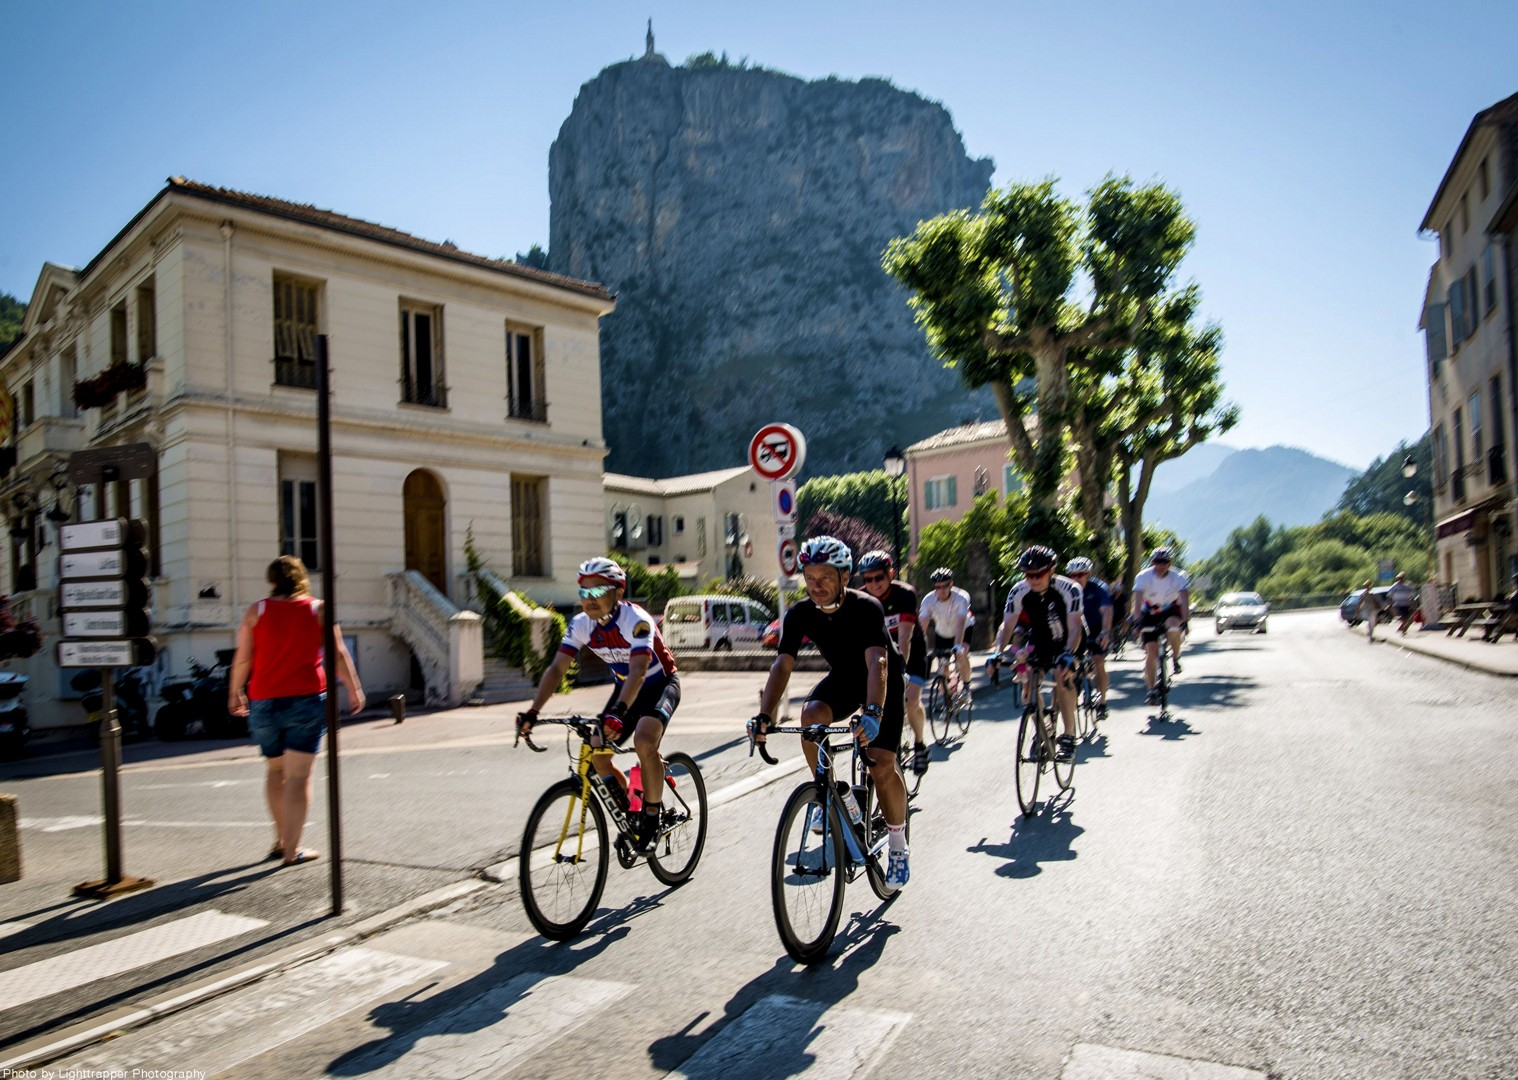 culture-town-utelle-road-bike-peloton-france.jpg - NEW! France - Provence - Alpes Maritimes - Road Cycling